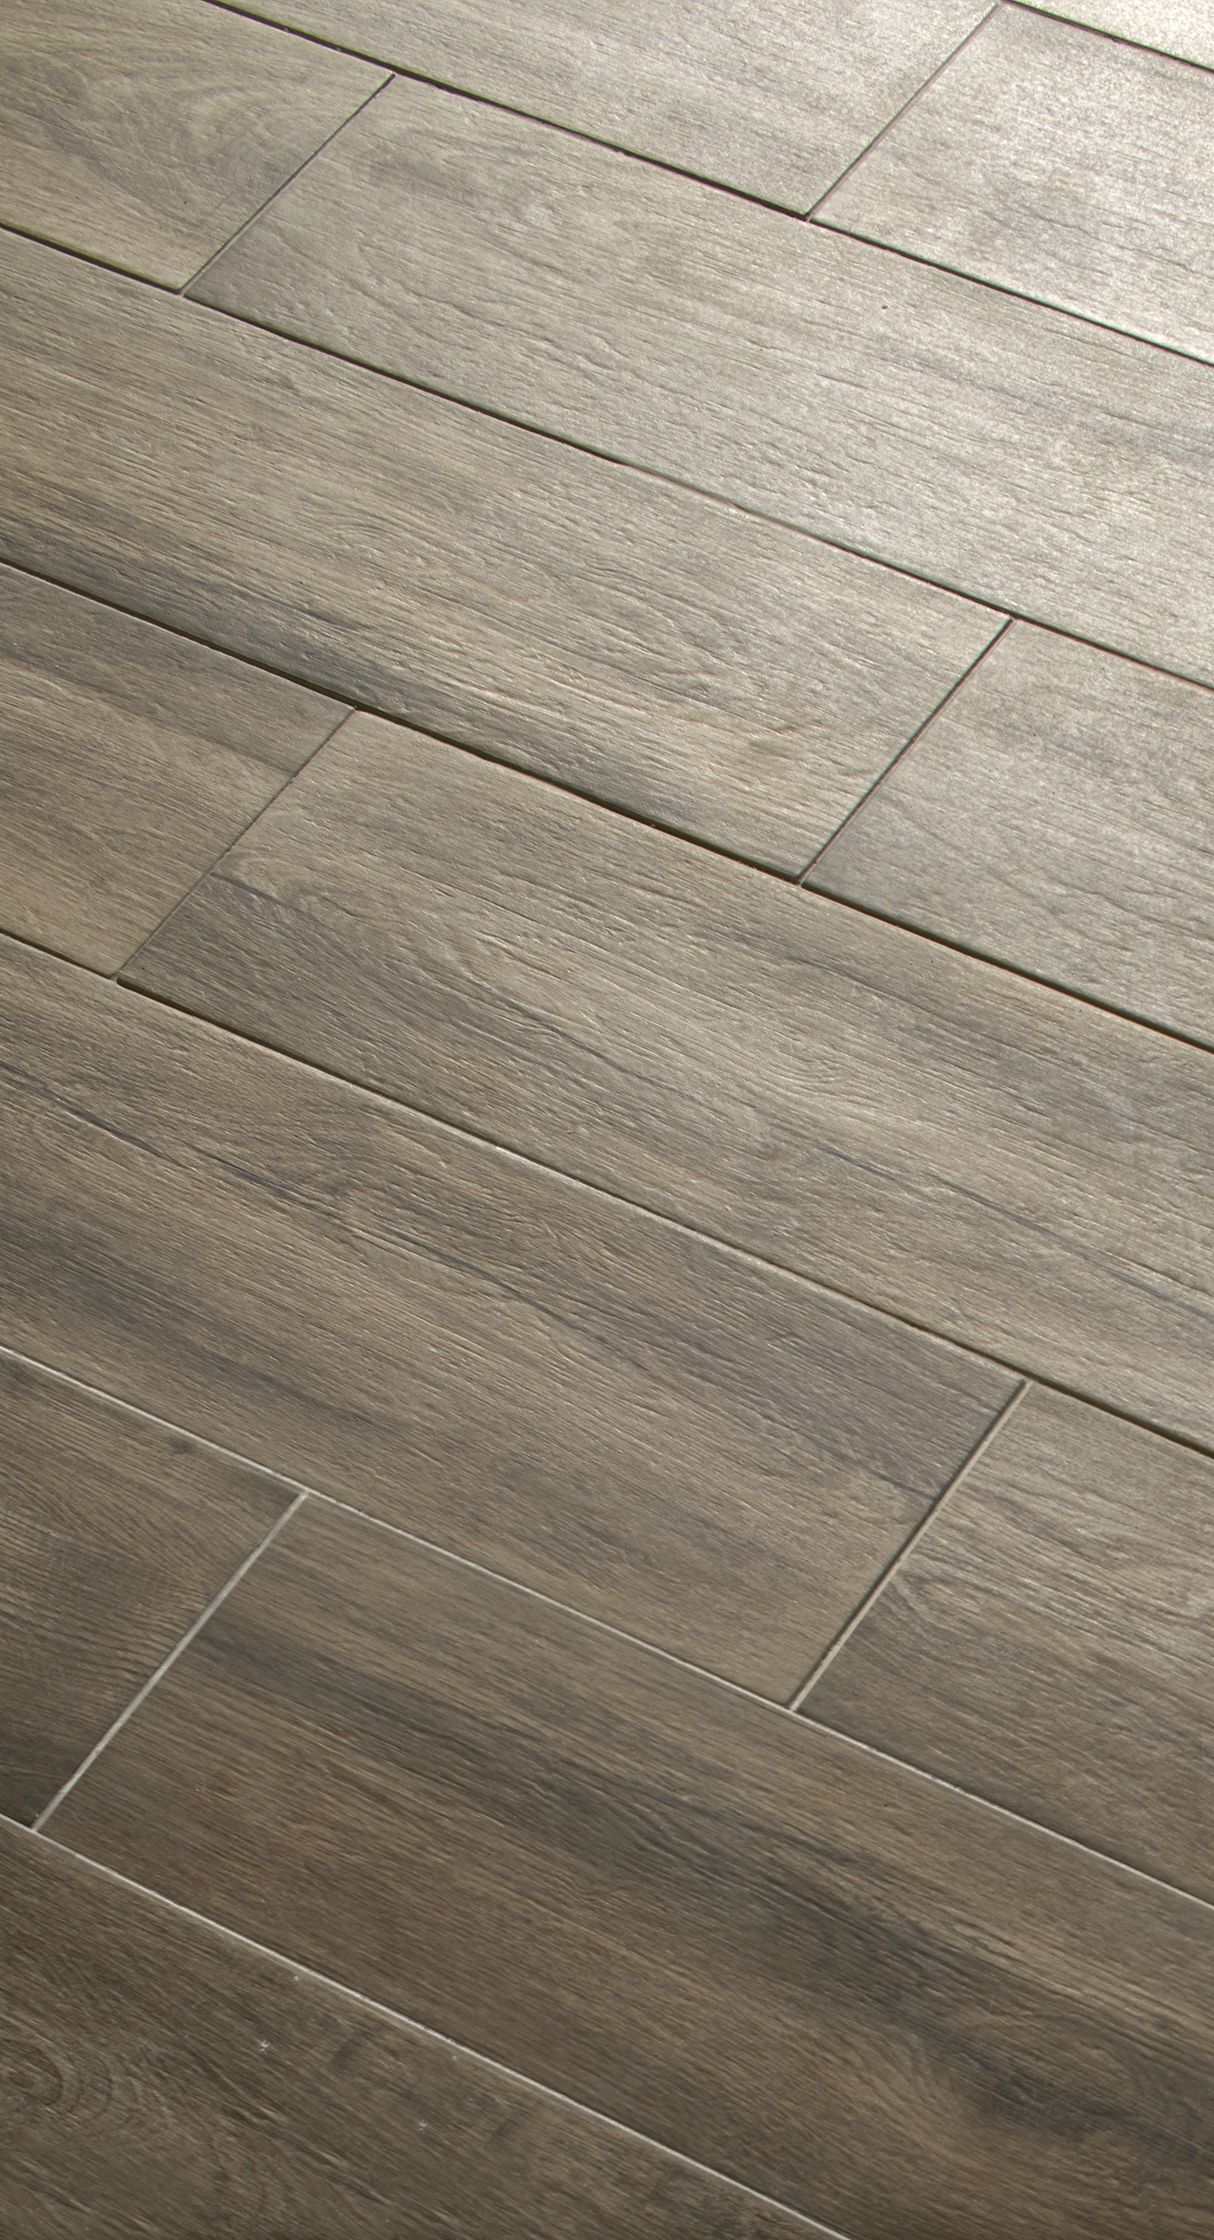 EverMore Porcelain Tile Is Daltile Features SlipDefense Technology - Daltile baton rouge louisiana